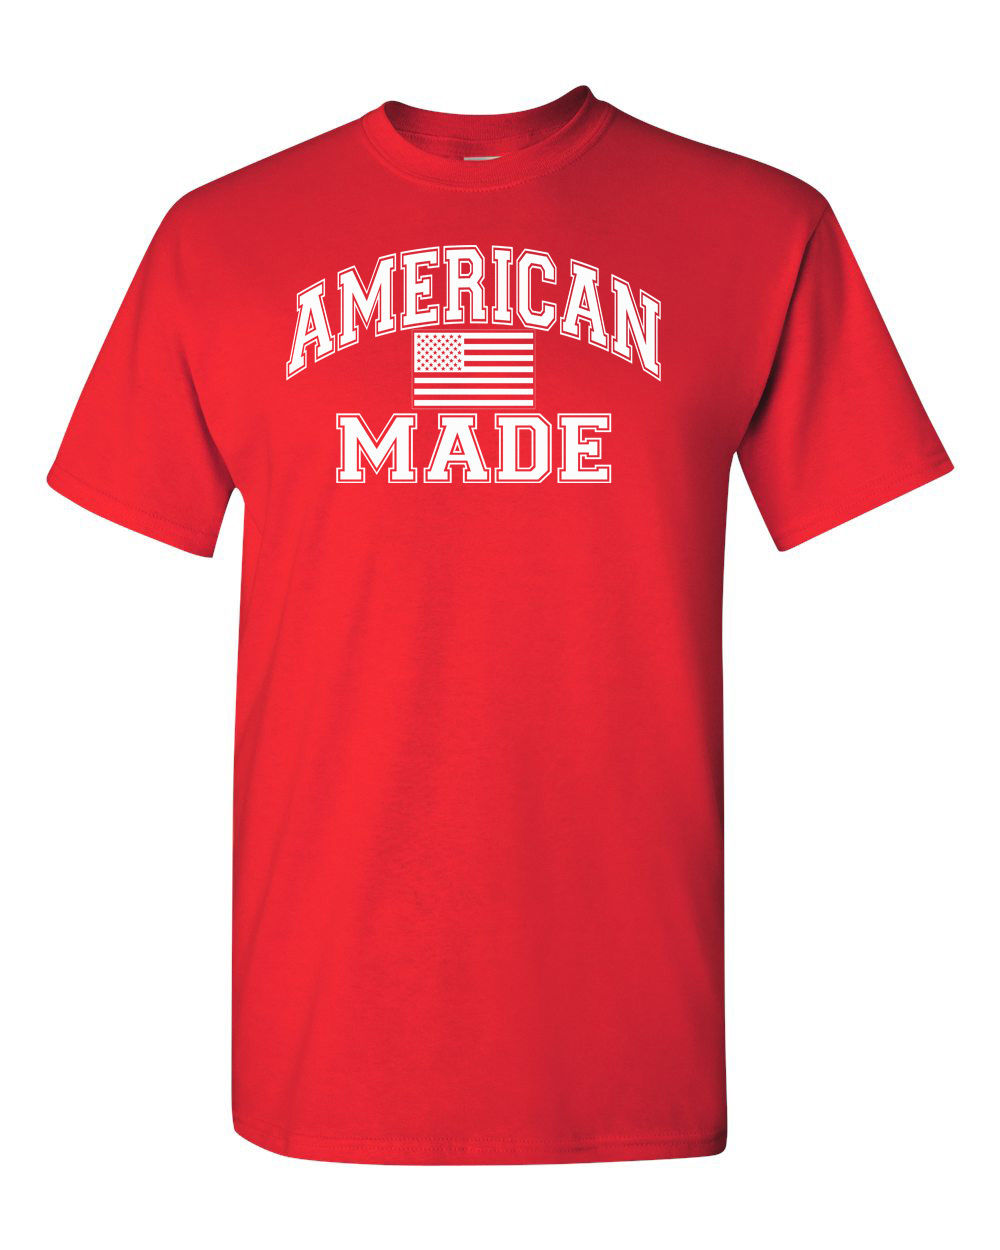 Design your own t shirt made in usa - American Made Flag Patriotic Usa America United States Men S Tee T Shirt New Short Sleevecollar Mens